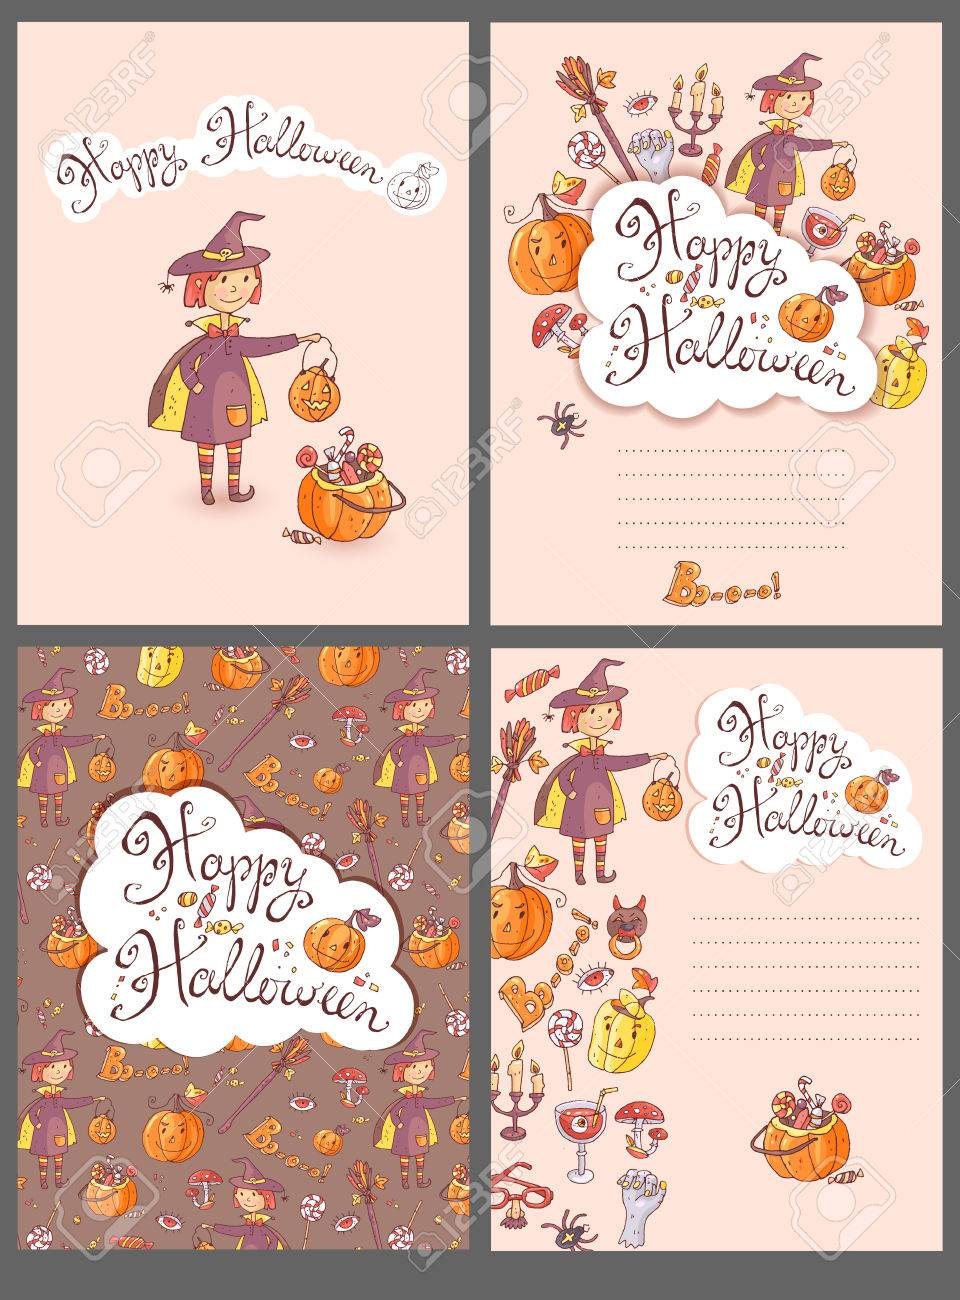 Hand Drawn Doodle Vector Halloween Greeting Cards With The Witch